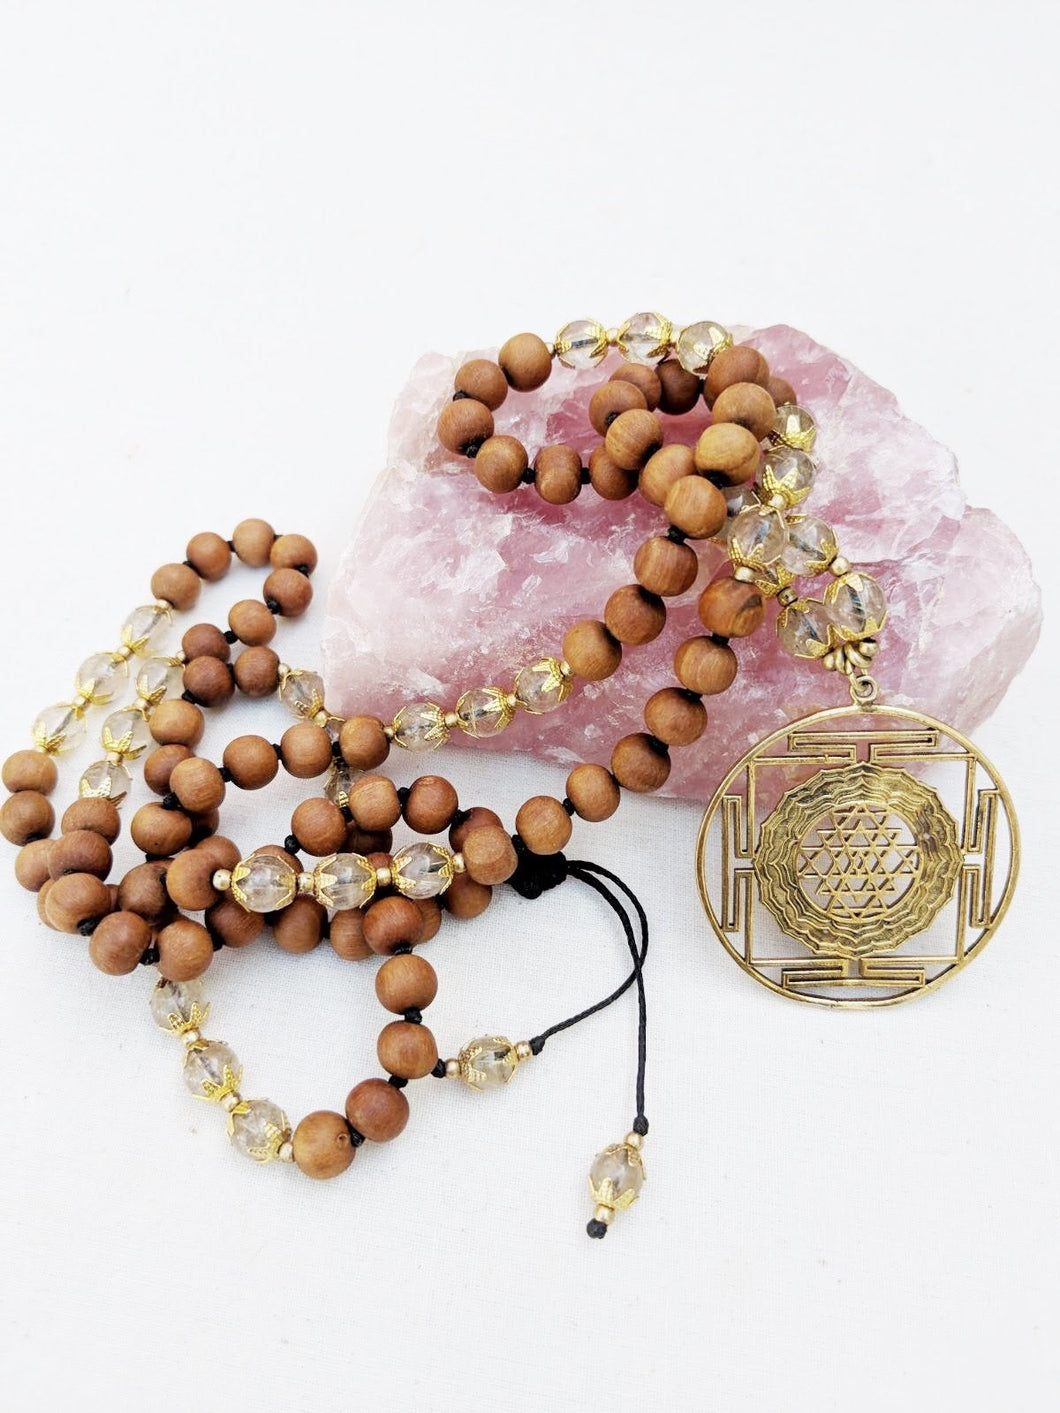 Yoga Mala | Rutilated Quartz Sandalwood Sri Yantra Mandala Pendant Necklace | 108 Beads